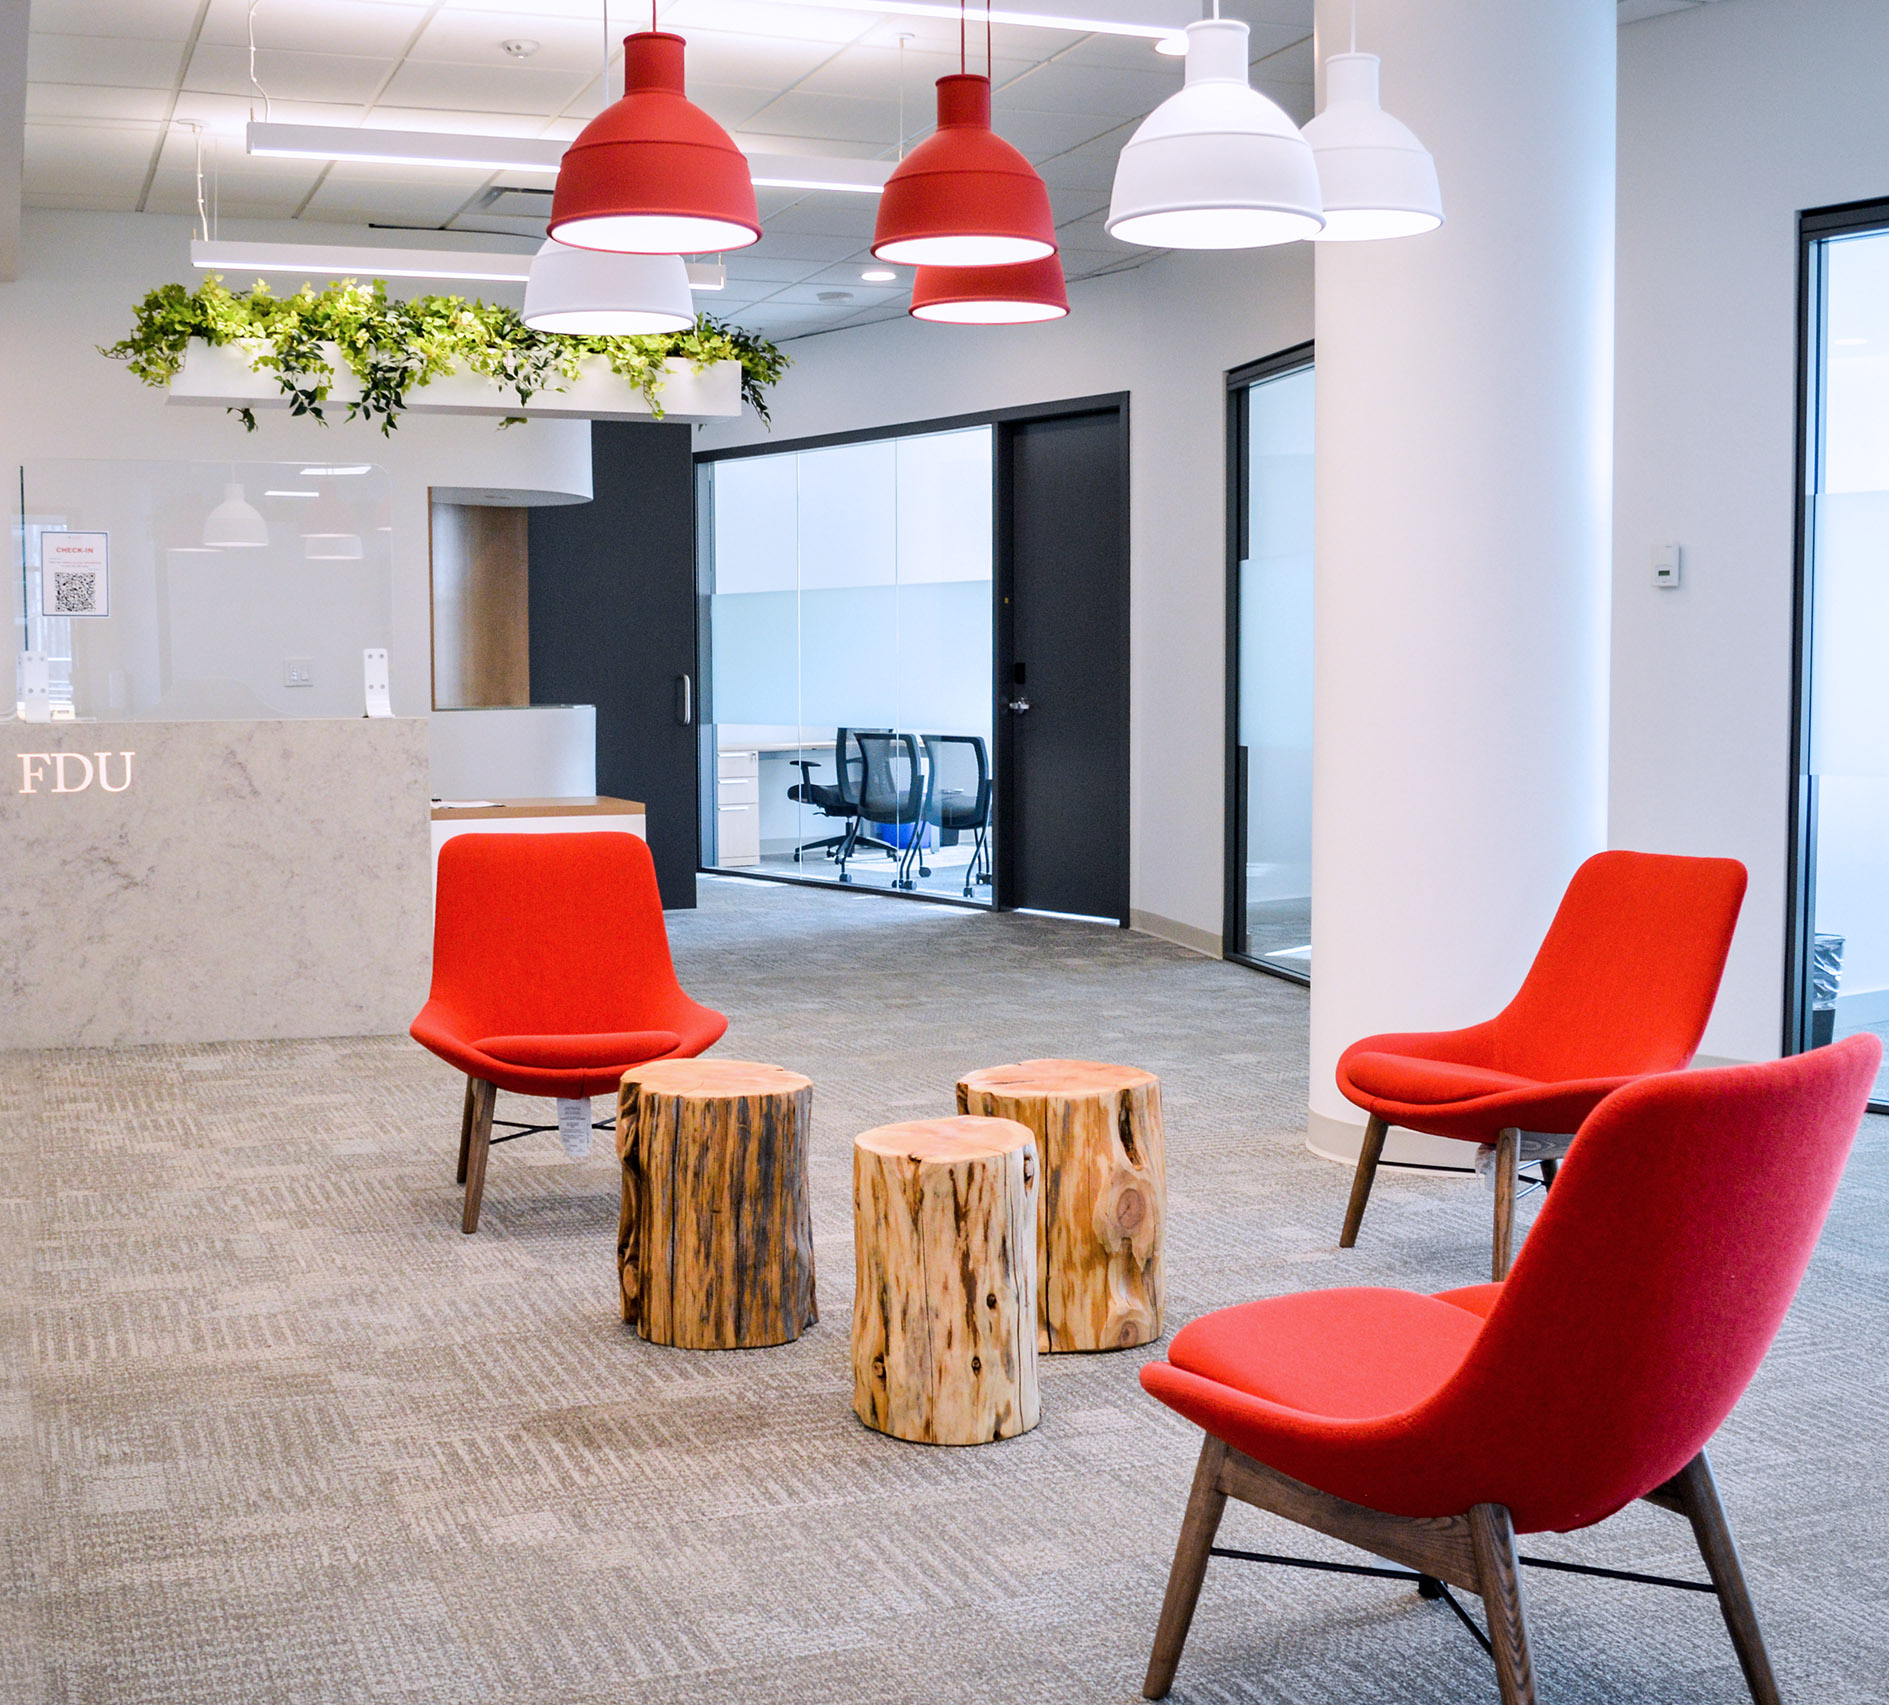 A reception area in the new Vancouver building.